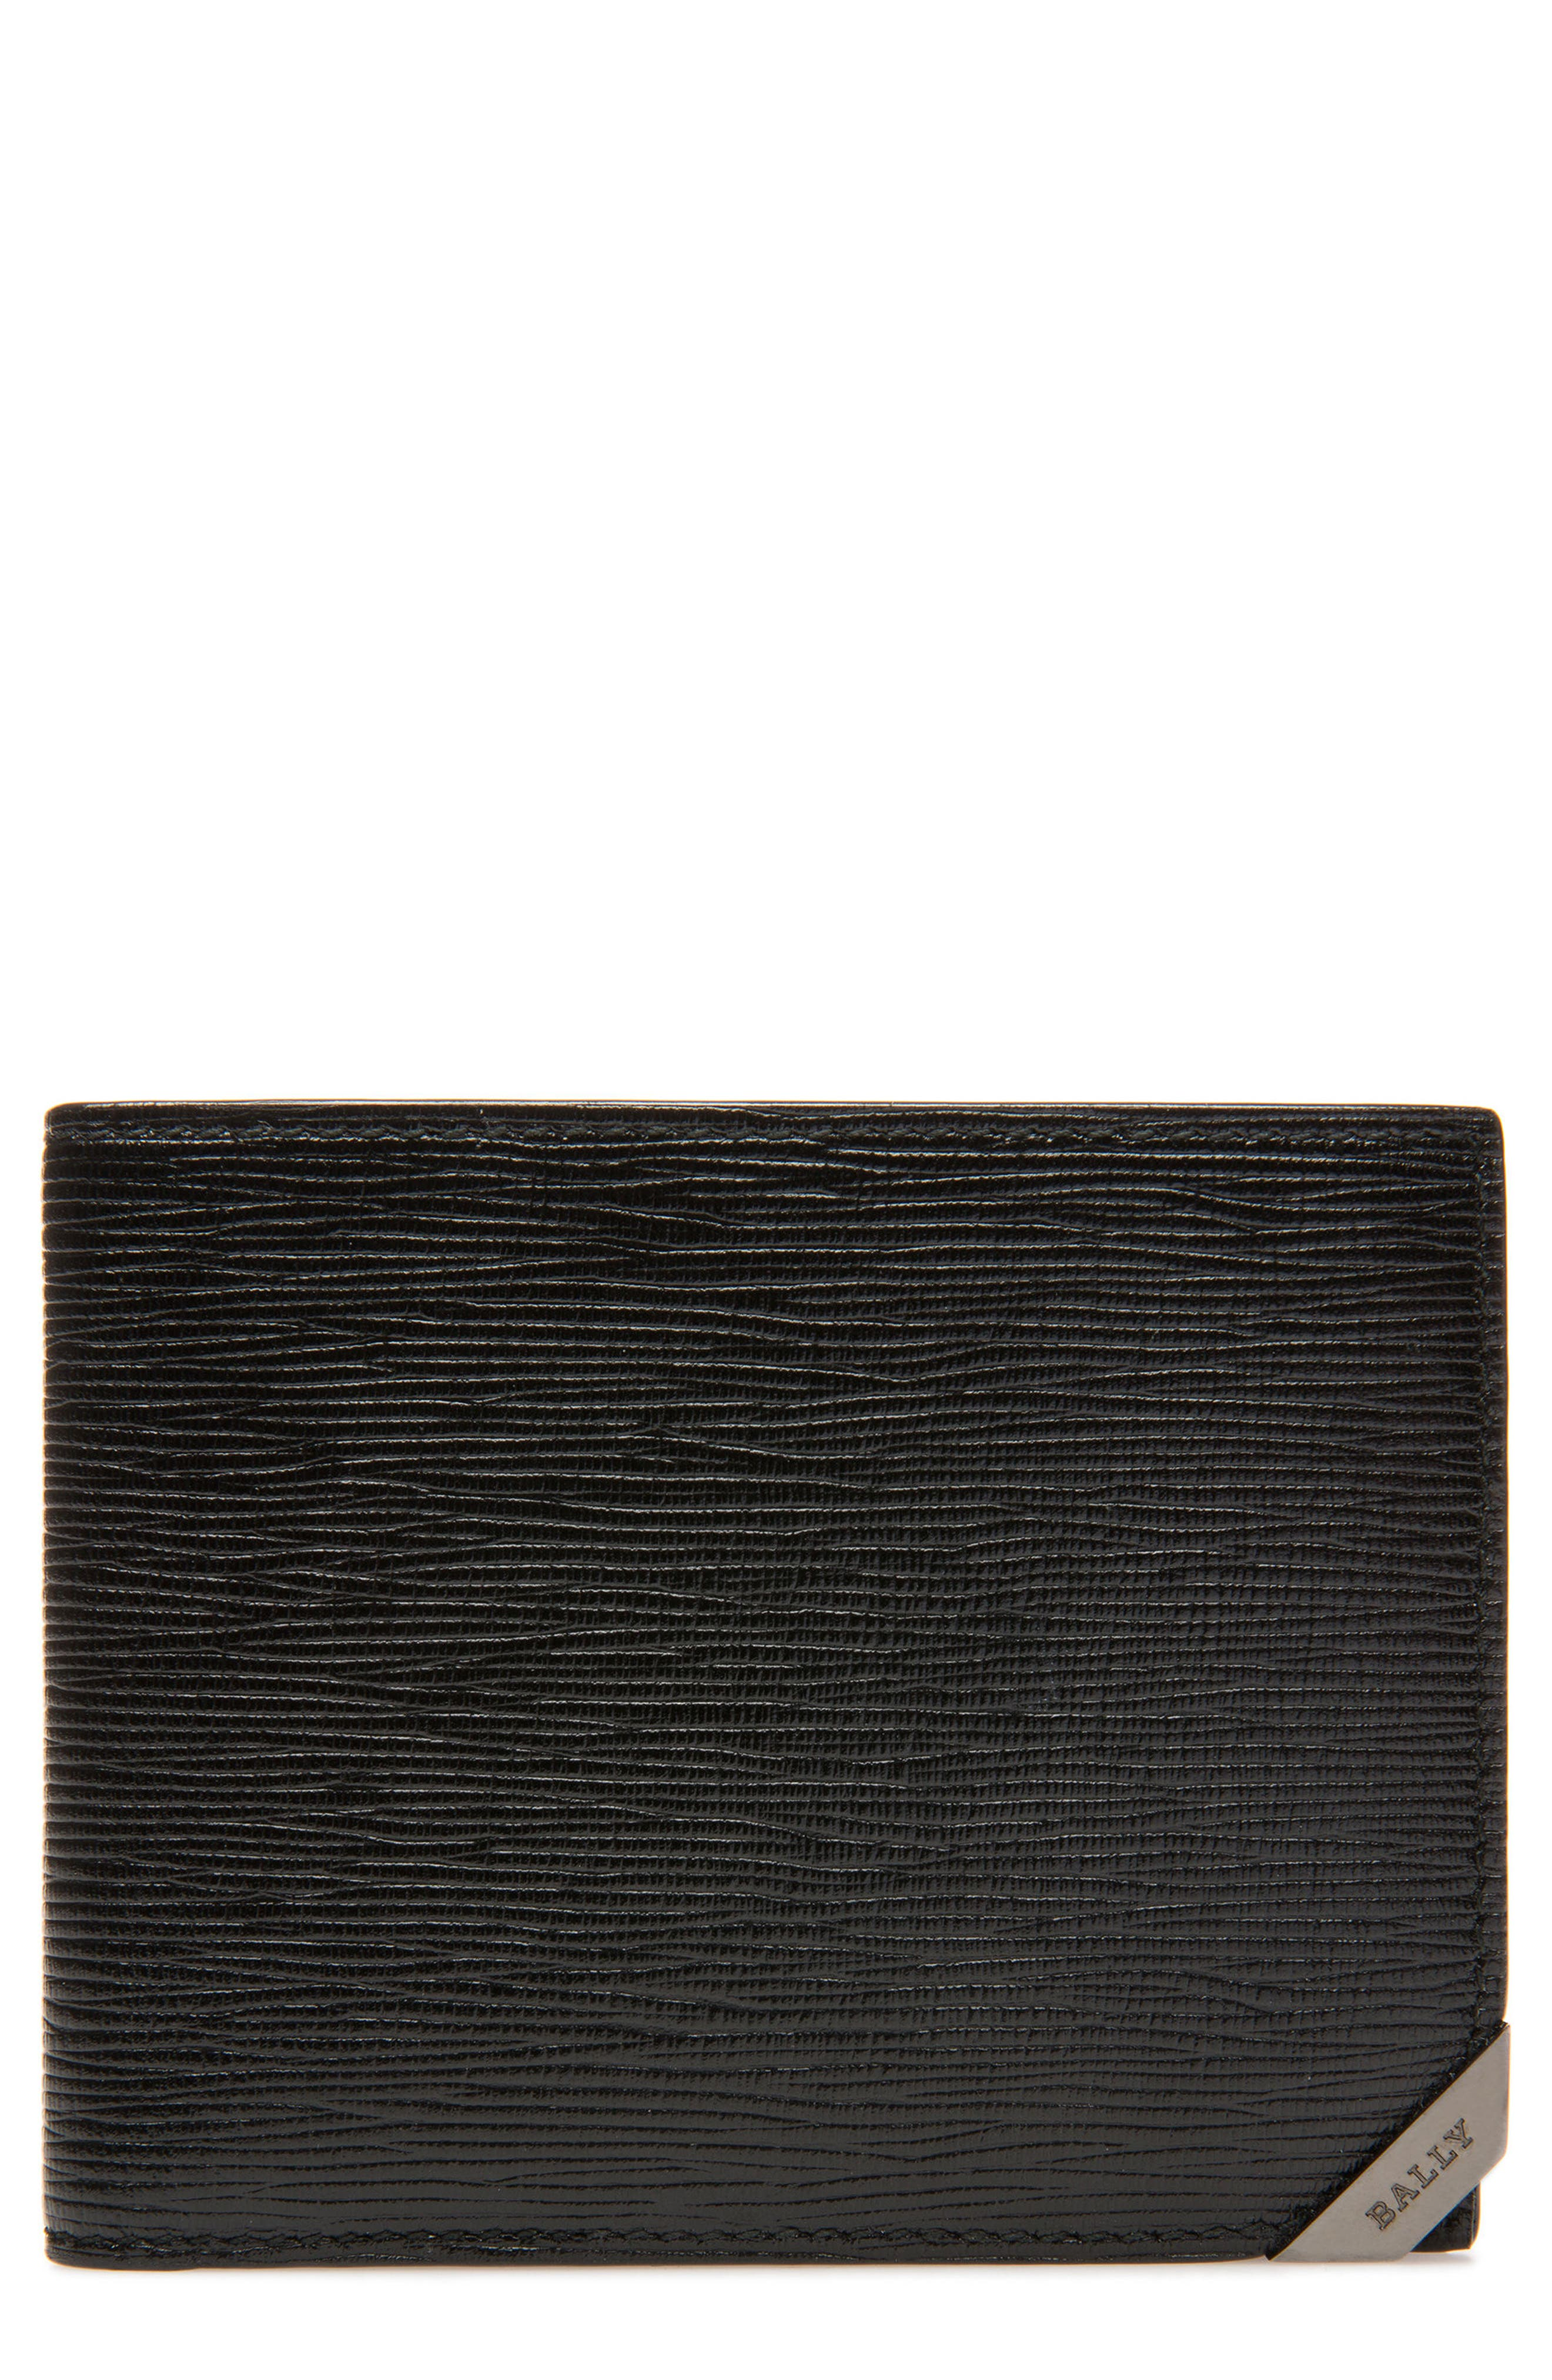 Bevye Leather Wallet,                             Main thumbnail 1, color,